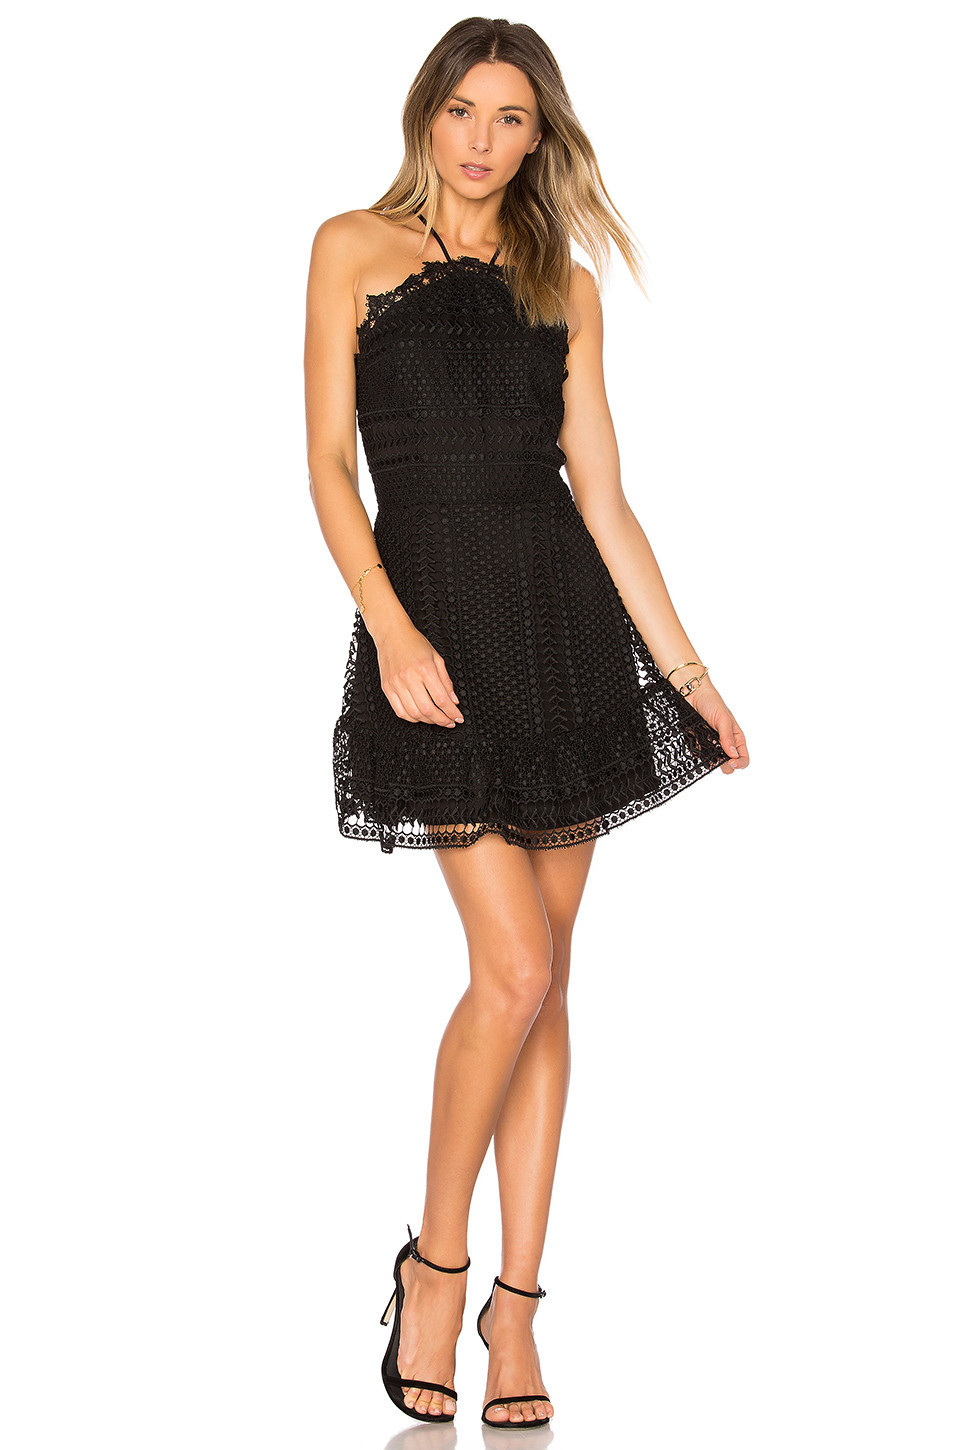 Karina Grimaldi Benjamin Lace Mini Dress in black